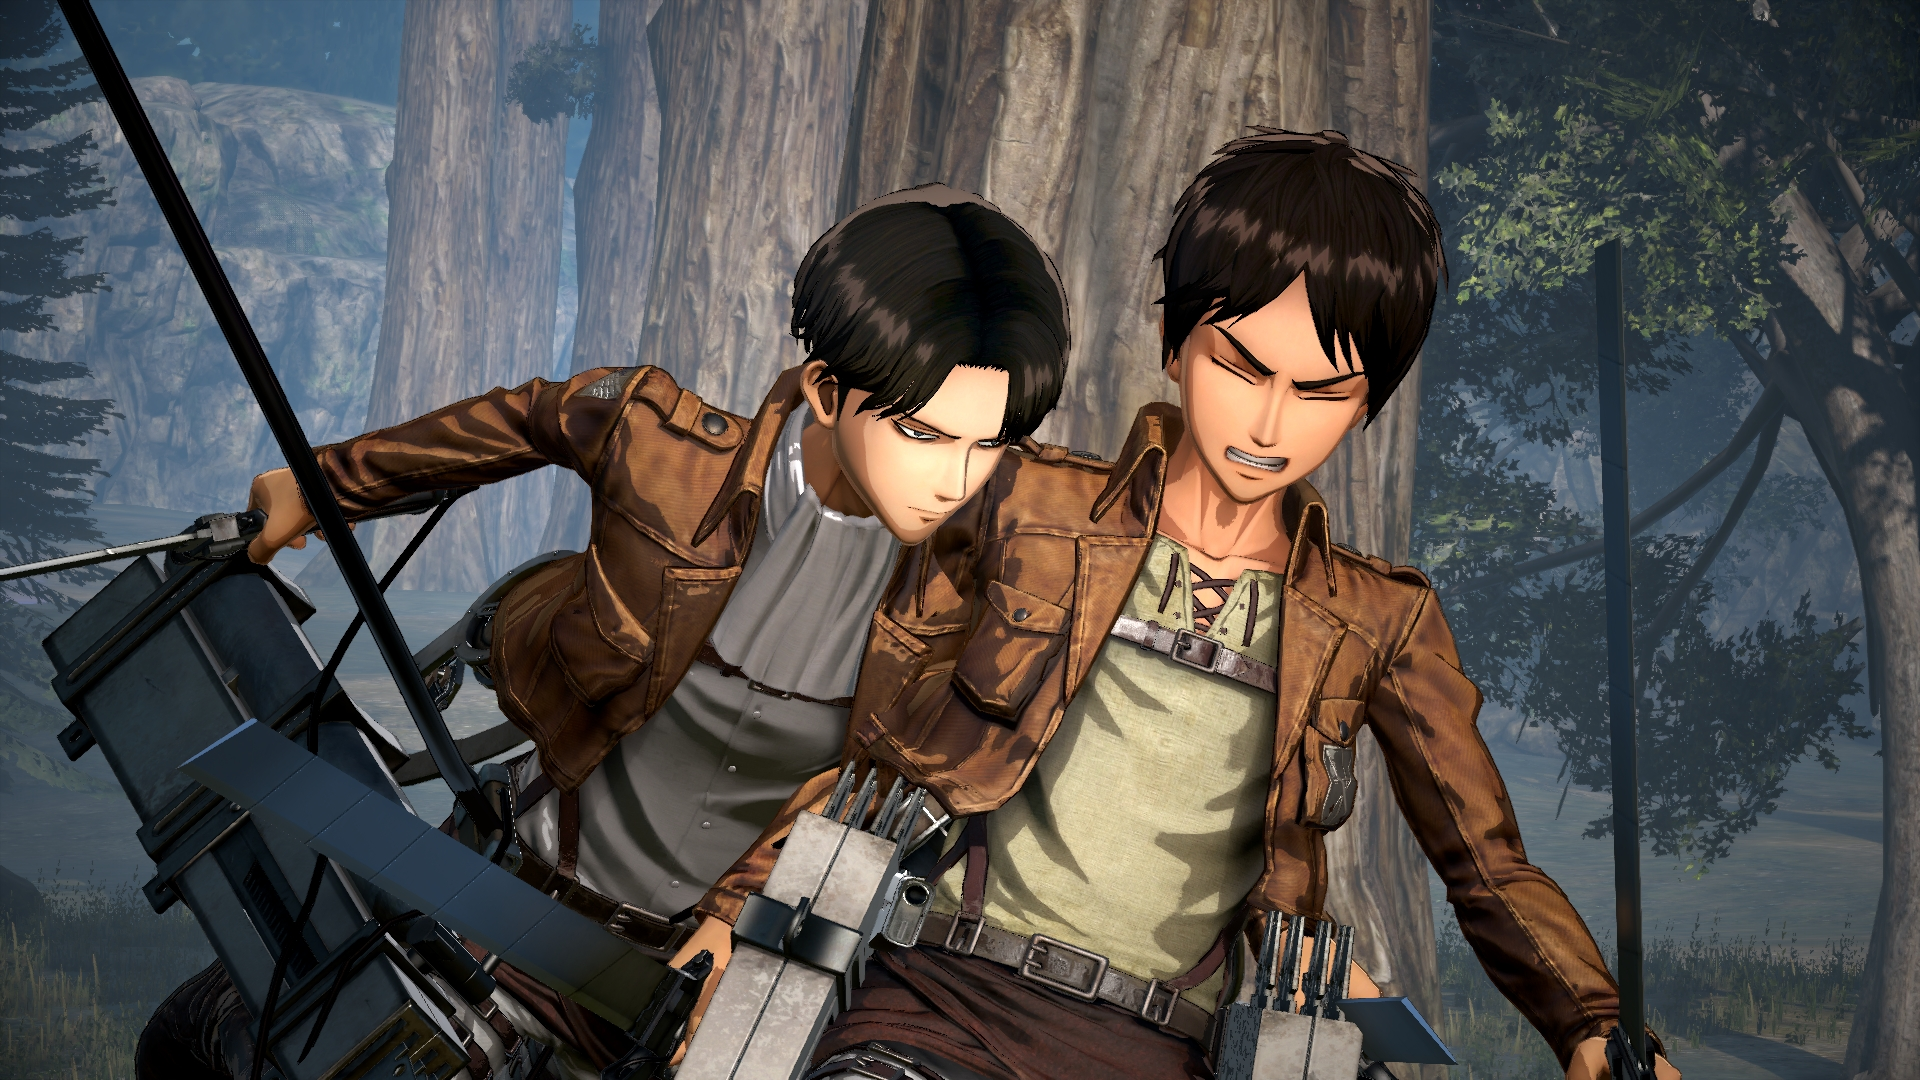 Attack On Titan 2 - The Game